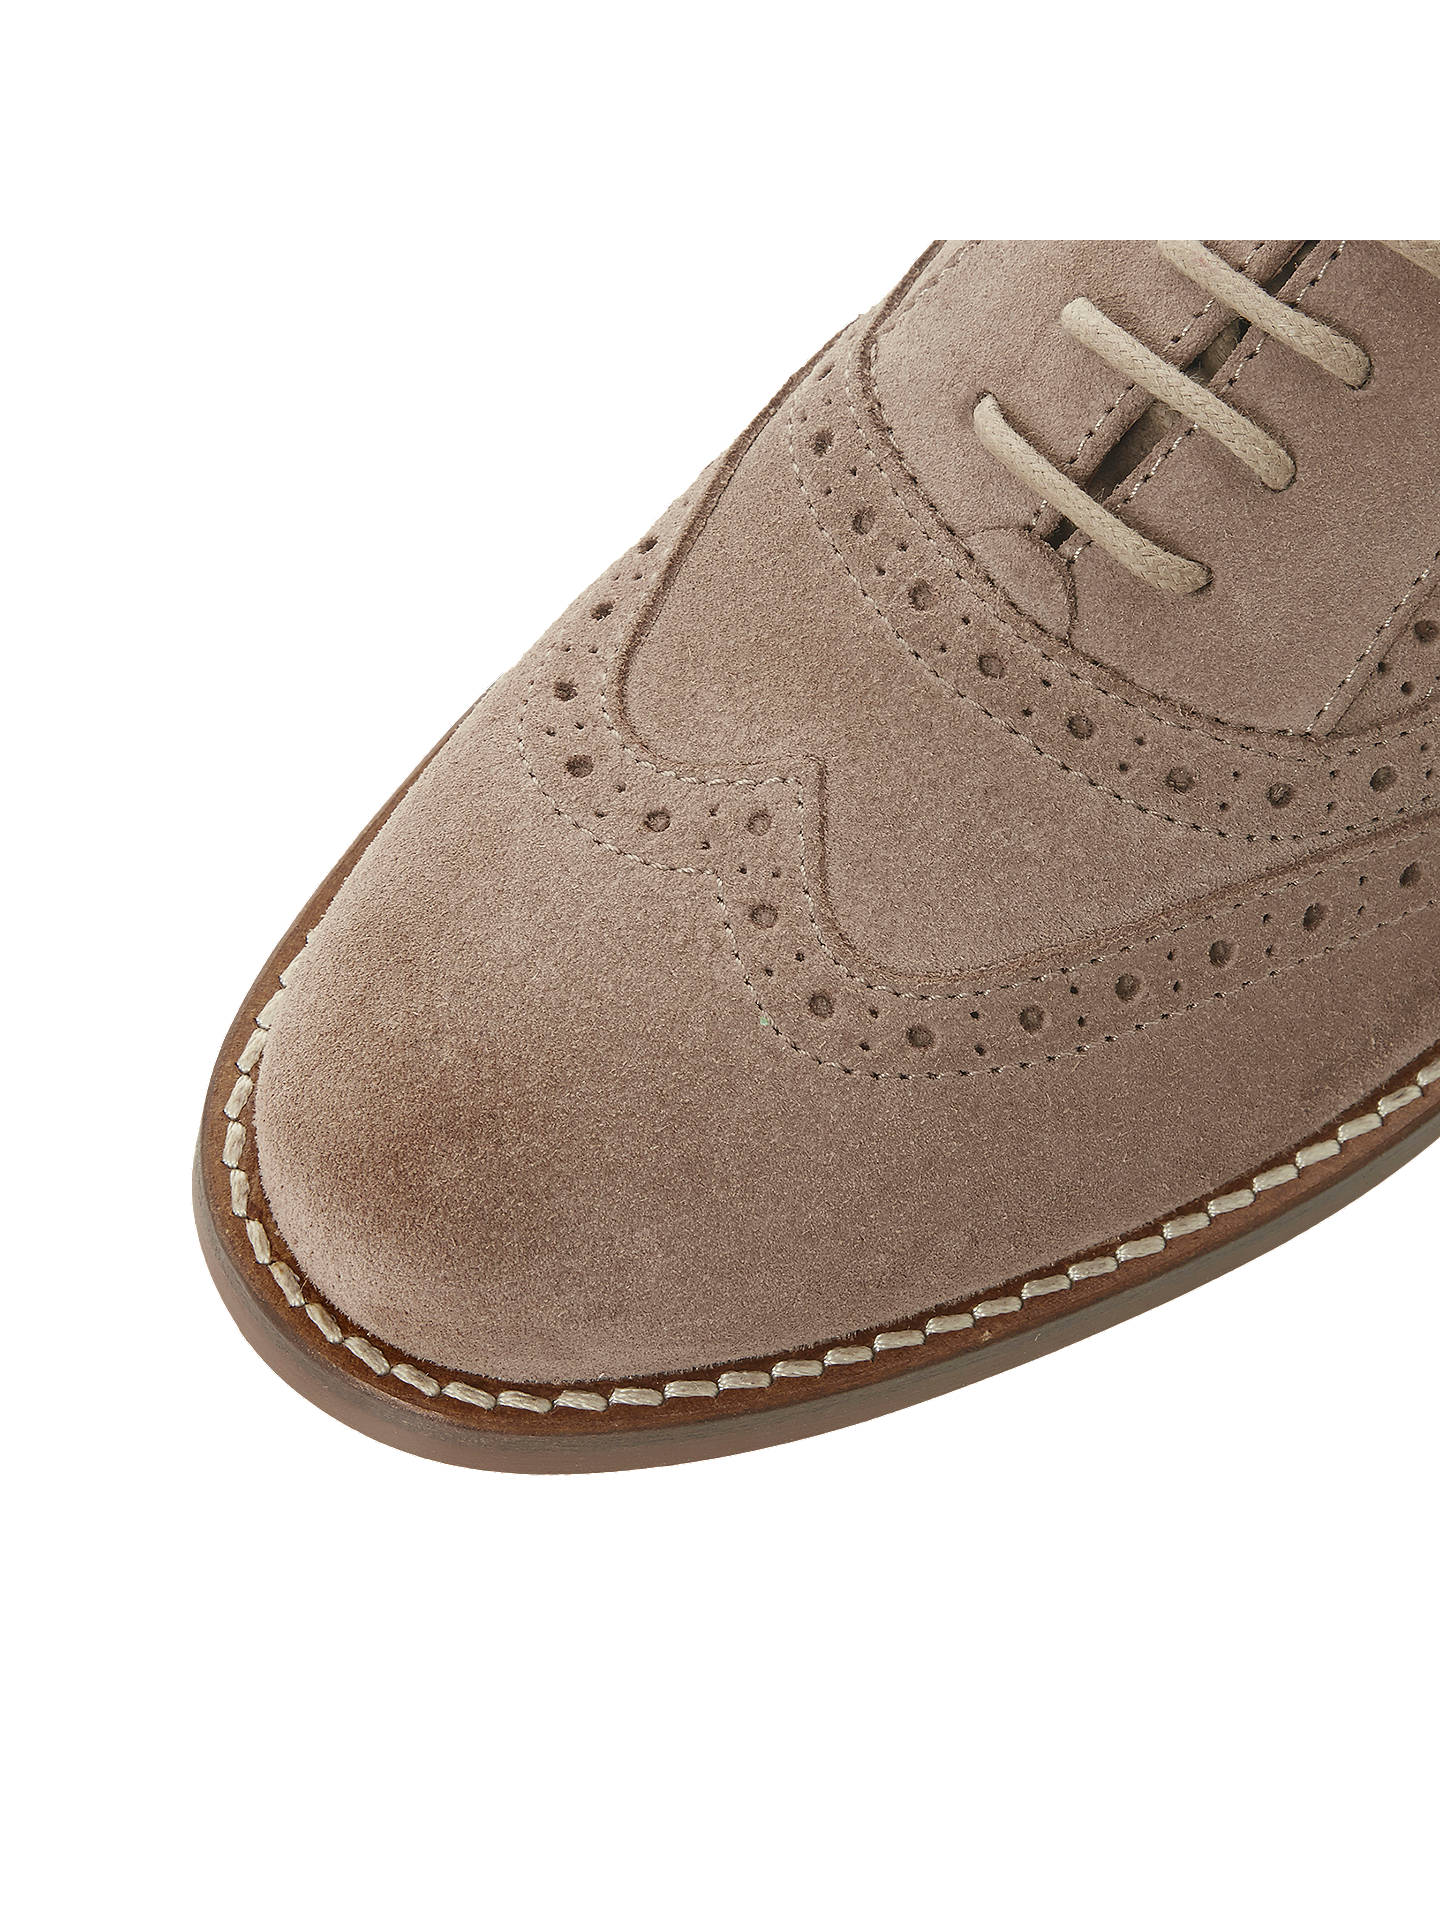 Buy Bertie Fae Lace Up Brogues, Stone, 3 Online at johnlewis.com